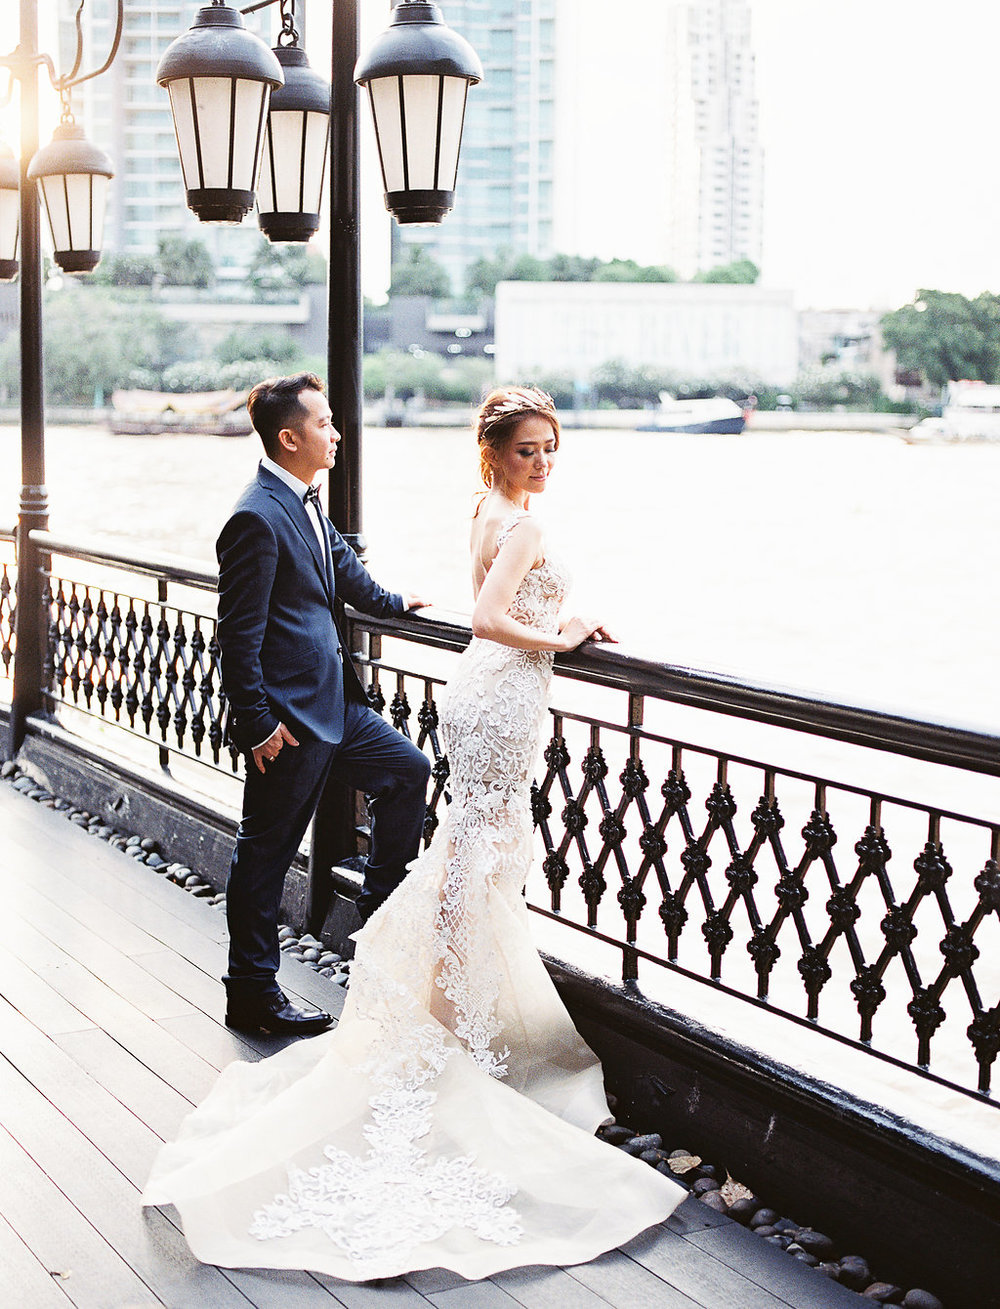 Luxe destination wedding in jakarta and bangkok tanja kibogo luxe destination wedding in jakarta and bankok fine art film wedding photographer tanja kibogo 5001 junglespirit Image collections